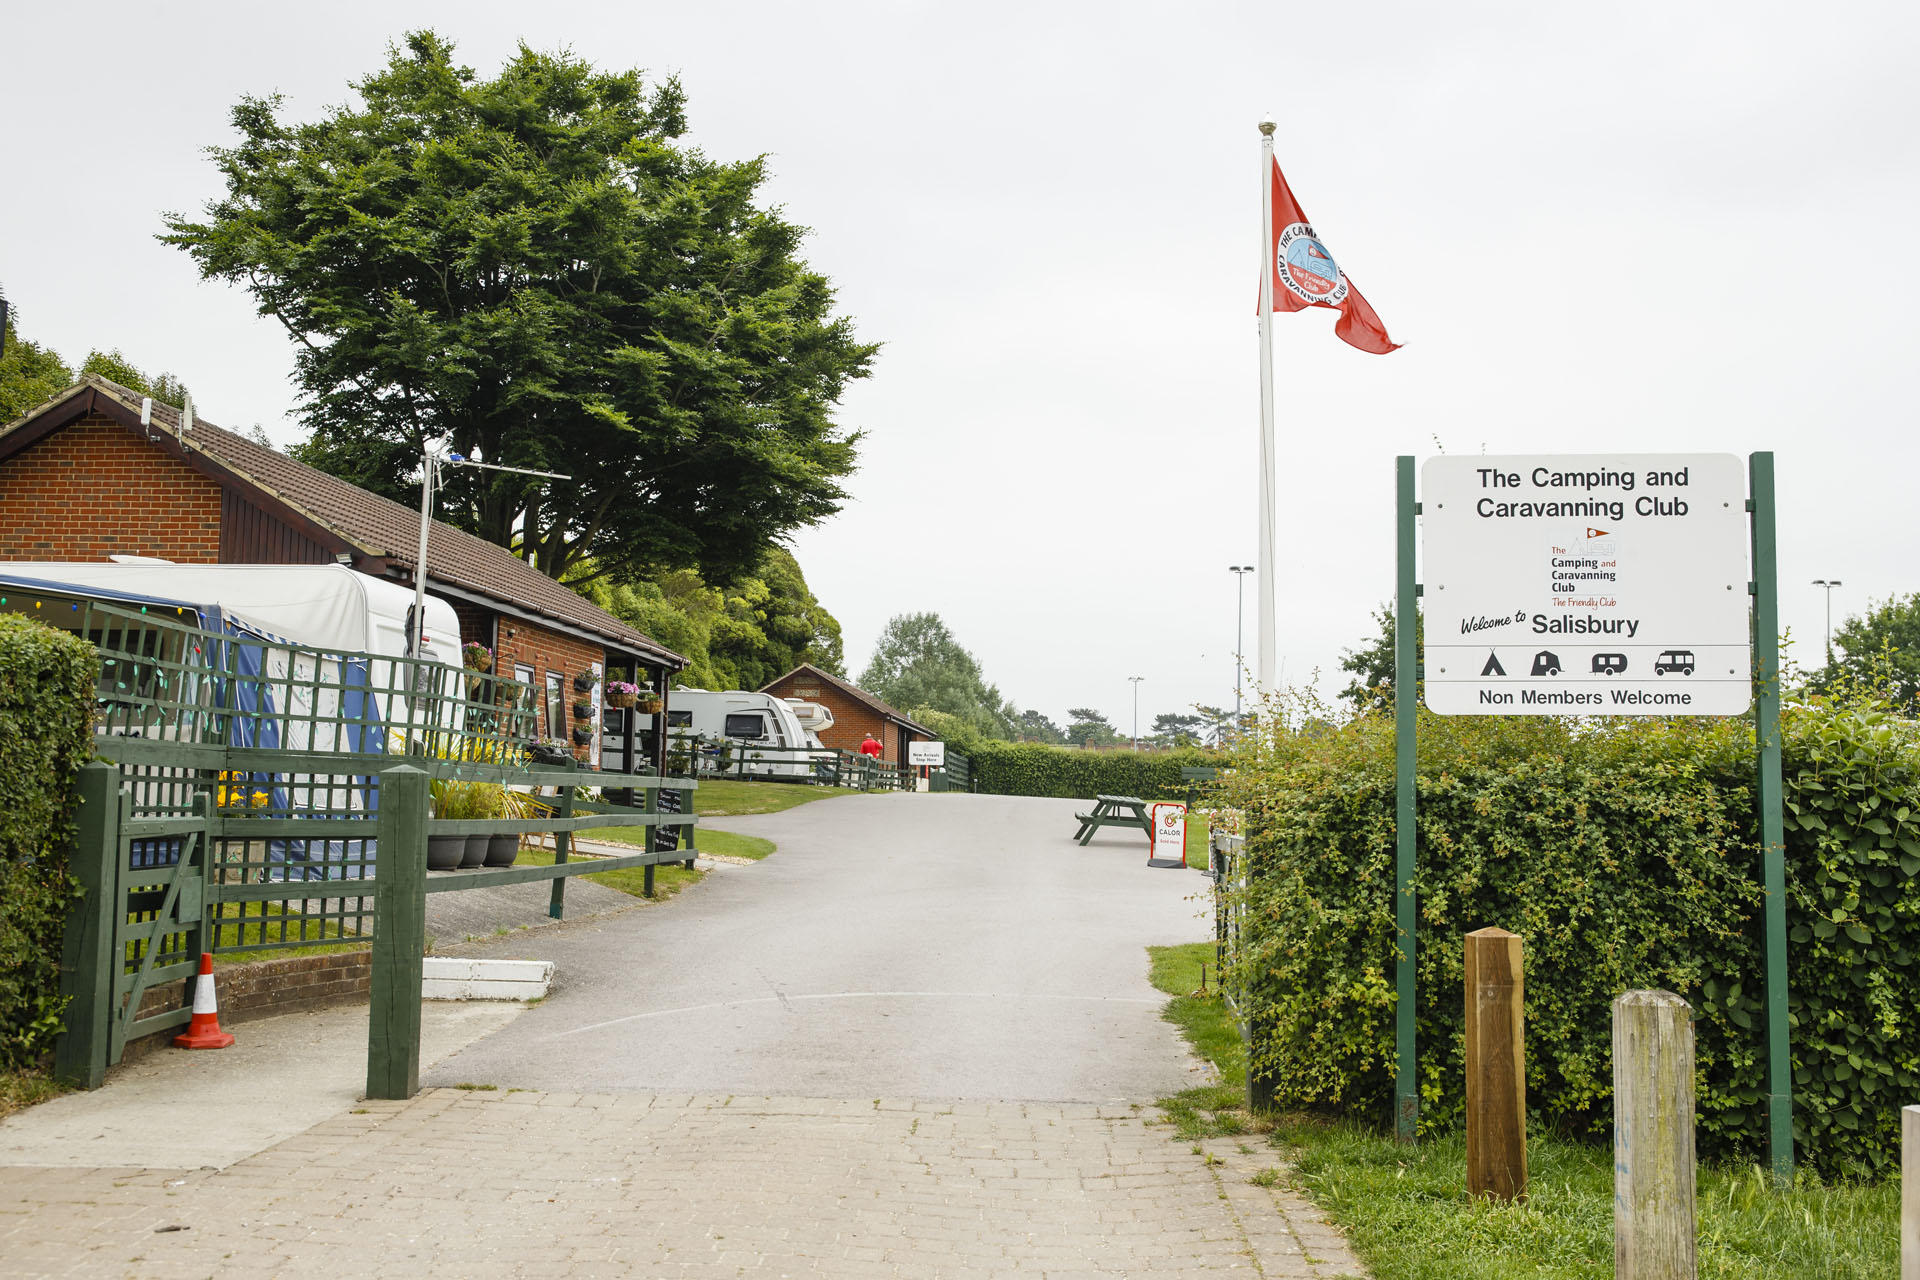 Salisbury - Camping and Caravanning Club Site - The Camping